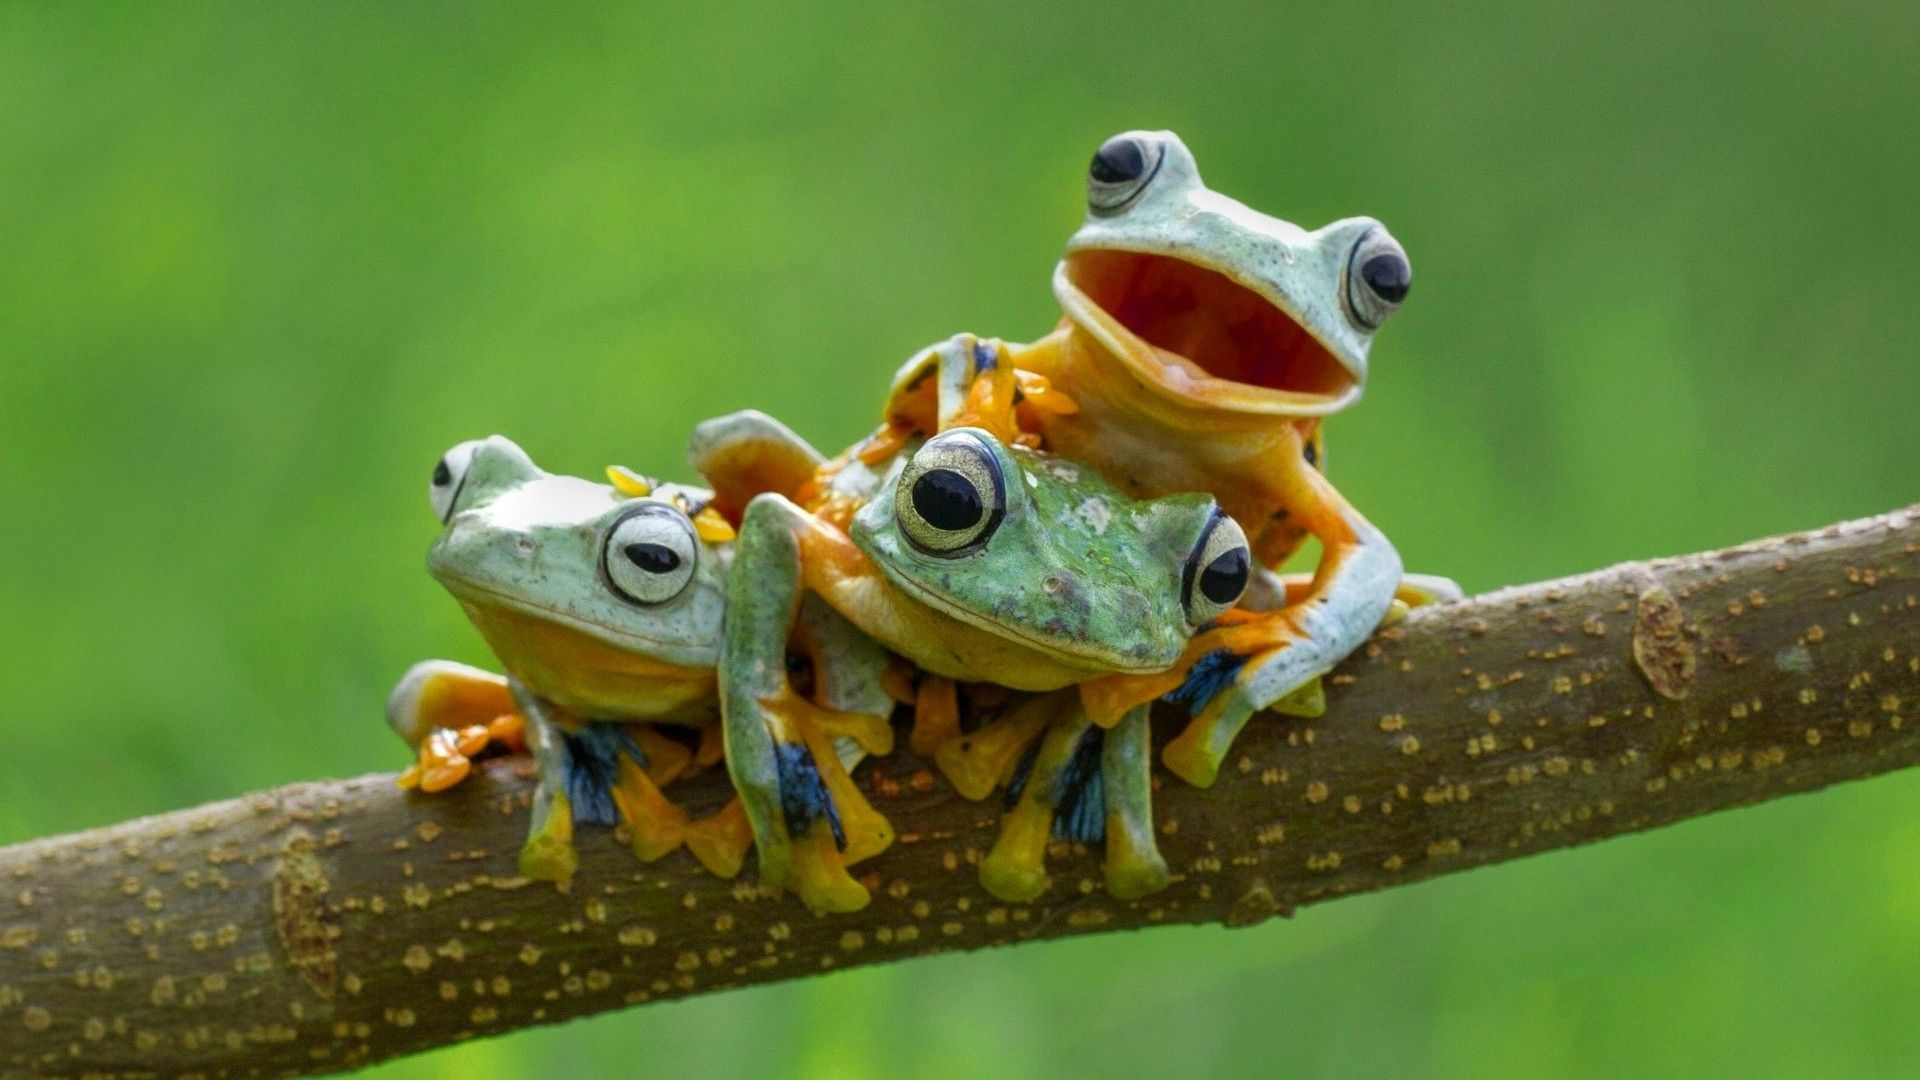 Frogs Images Frog Wallpaper Hd Wallpaper And Background Photos 1920 1080 Frog Wallpaper 58 Wallpapers Adorable Wallpa Cute Frogs Animals Animals Beautiful